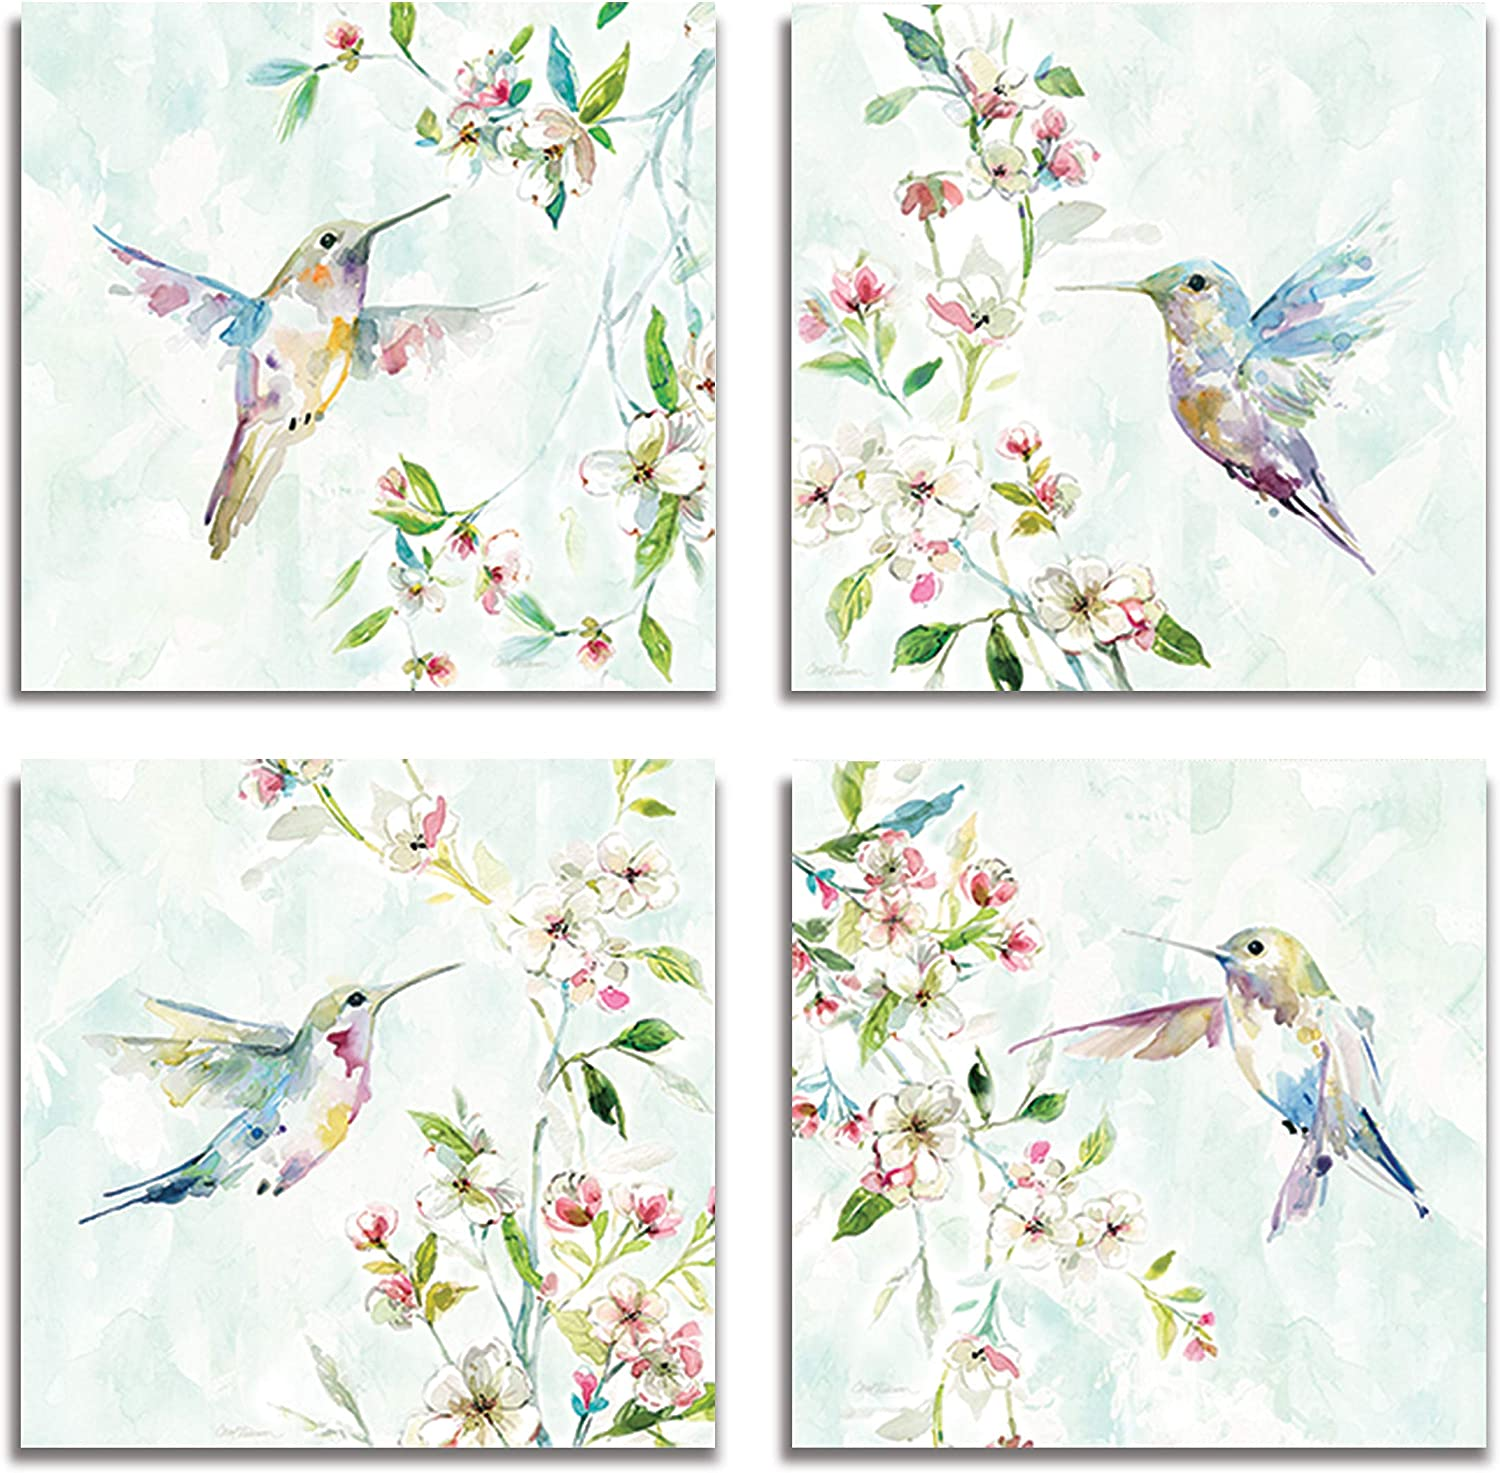 WEXFORD HOME Flower Spring Collection Canvas Print 4 Panels Set Décor for Home Office Wall Art, 12X12, Hummingbird/Frameless